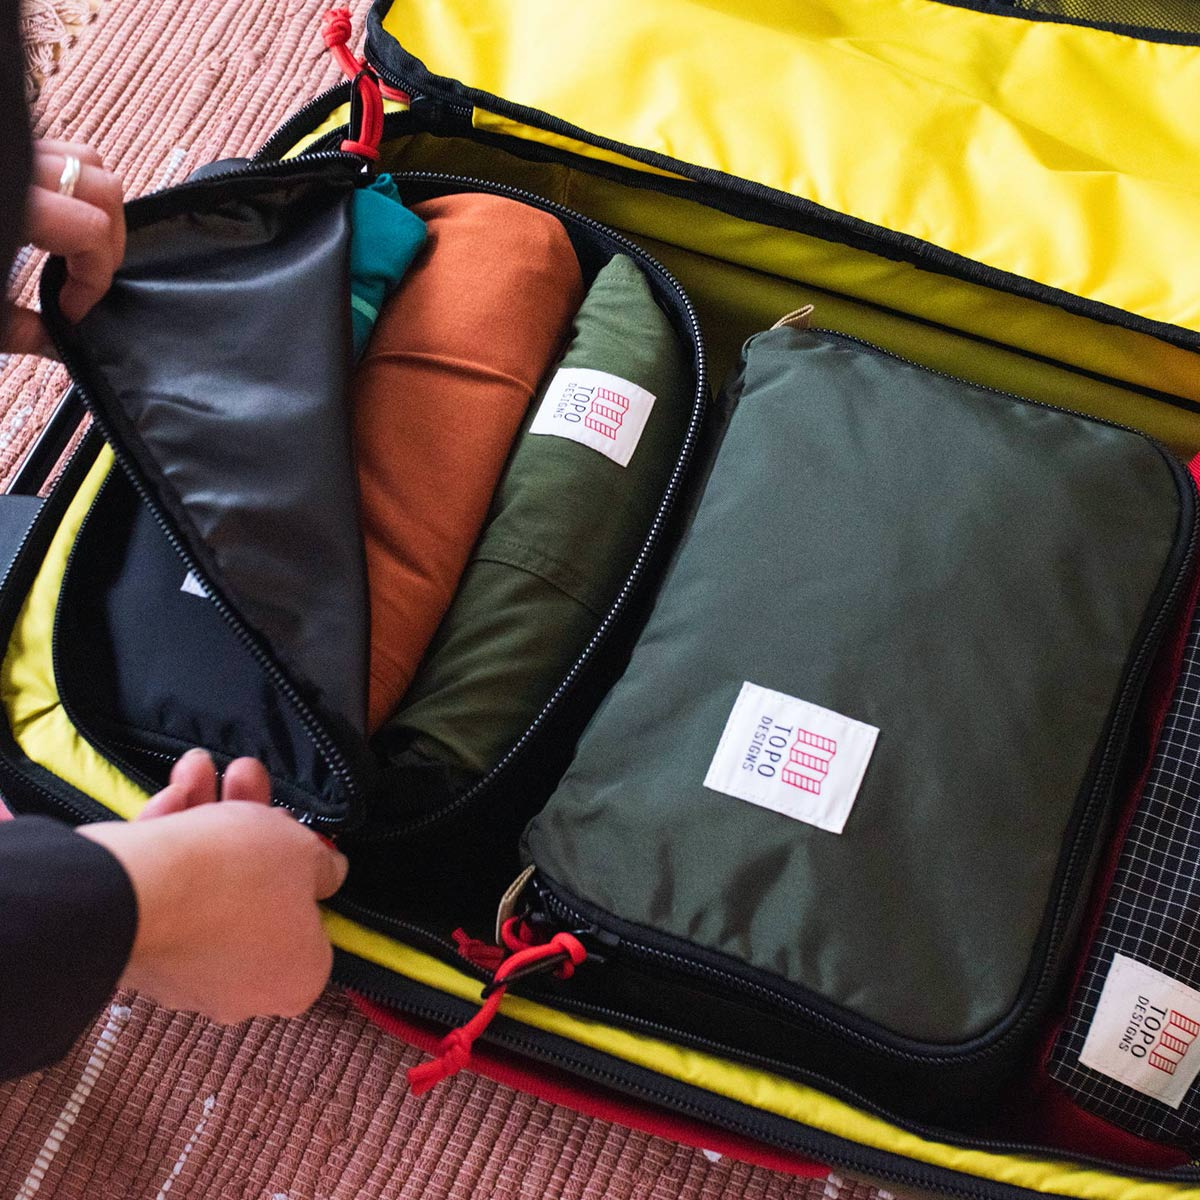 Topo Designs Pack Bag 10L Cube Black, a simple, durable and highly functional way to organize your luggage